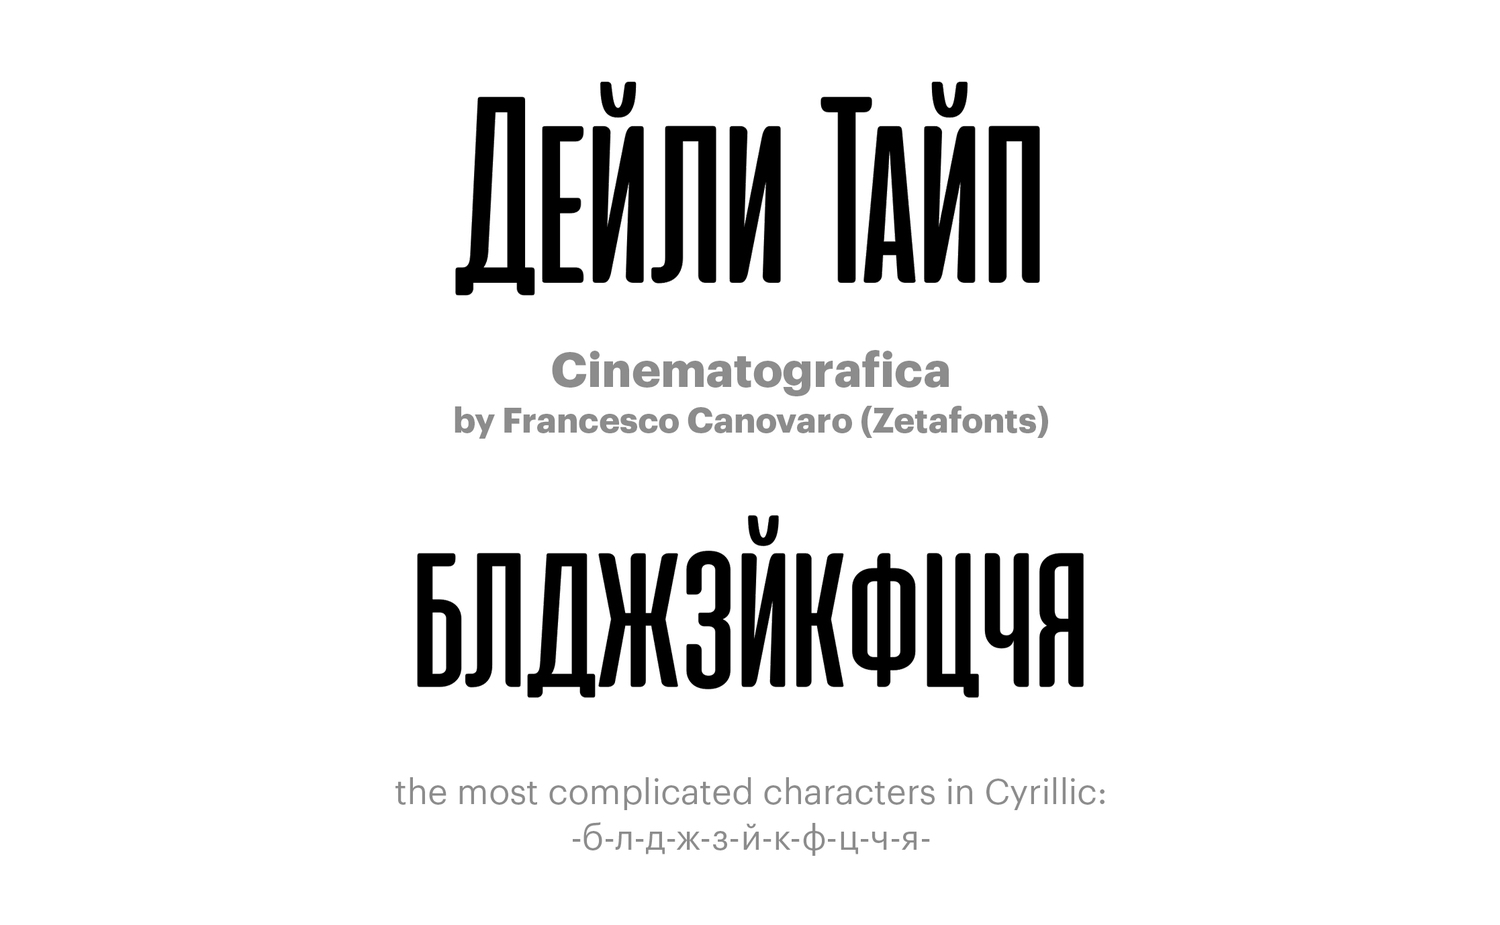 Cinematografica-by-Francesco-Canovaro-(Zetafonts)